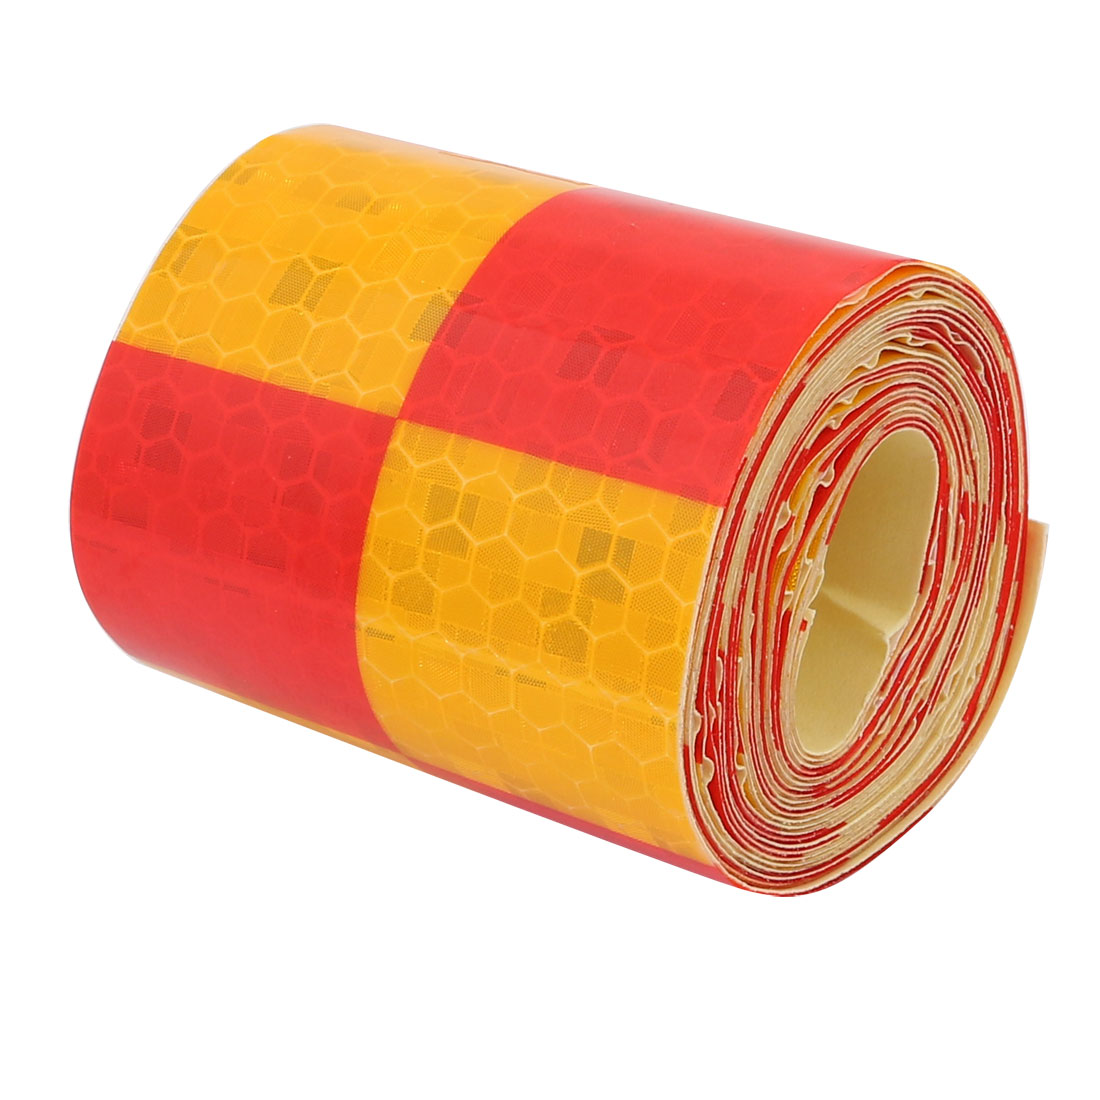 5cm Wide 2 Meter Length Honeycomb Adhesive Reflective Warning Tape Red Yellow